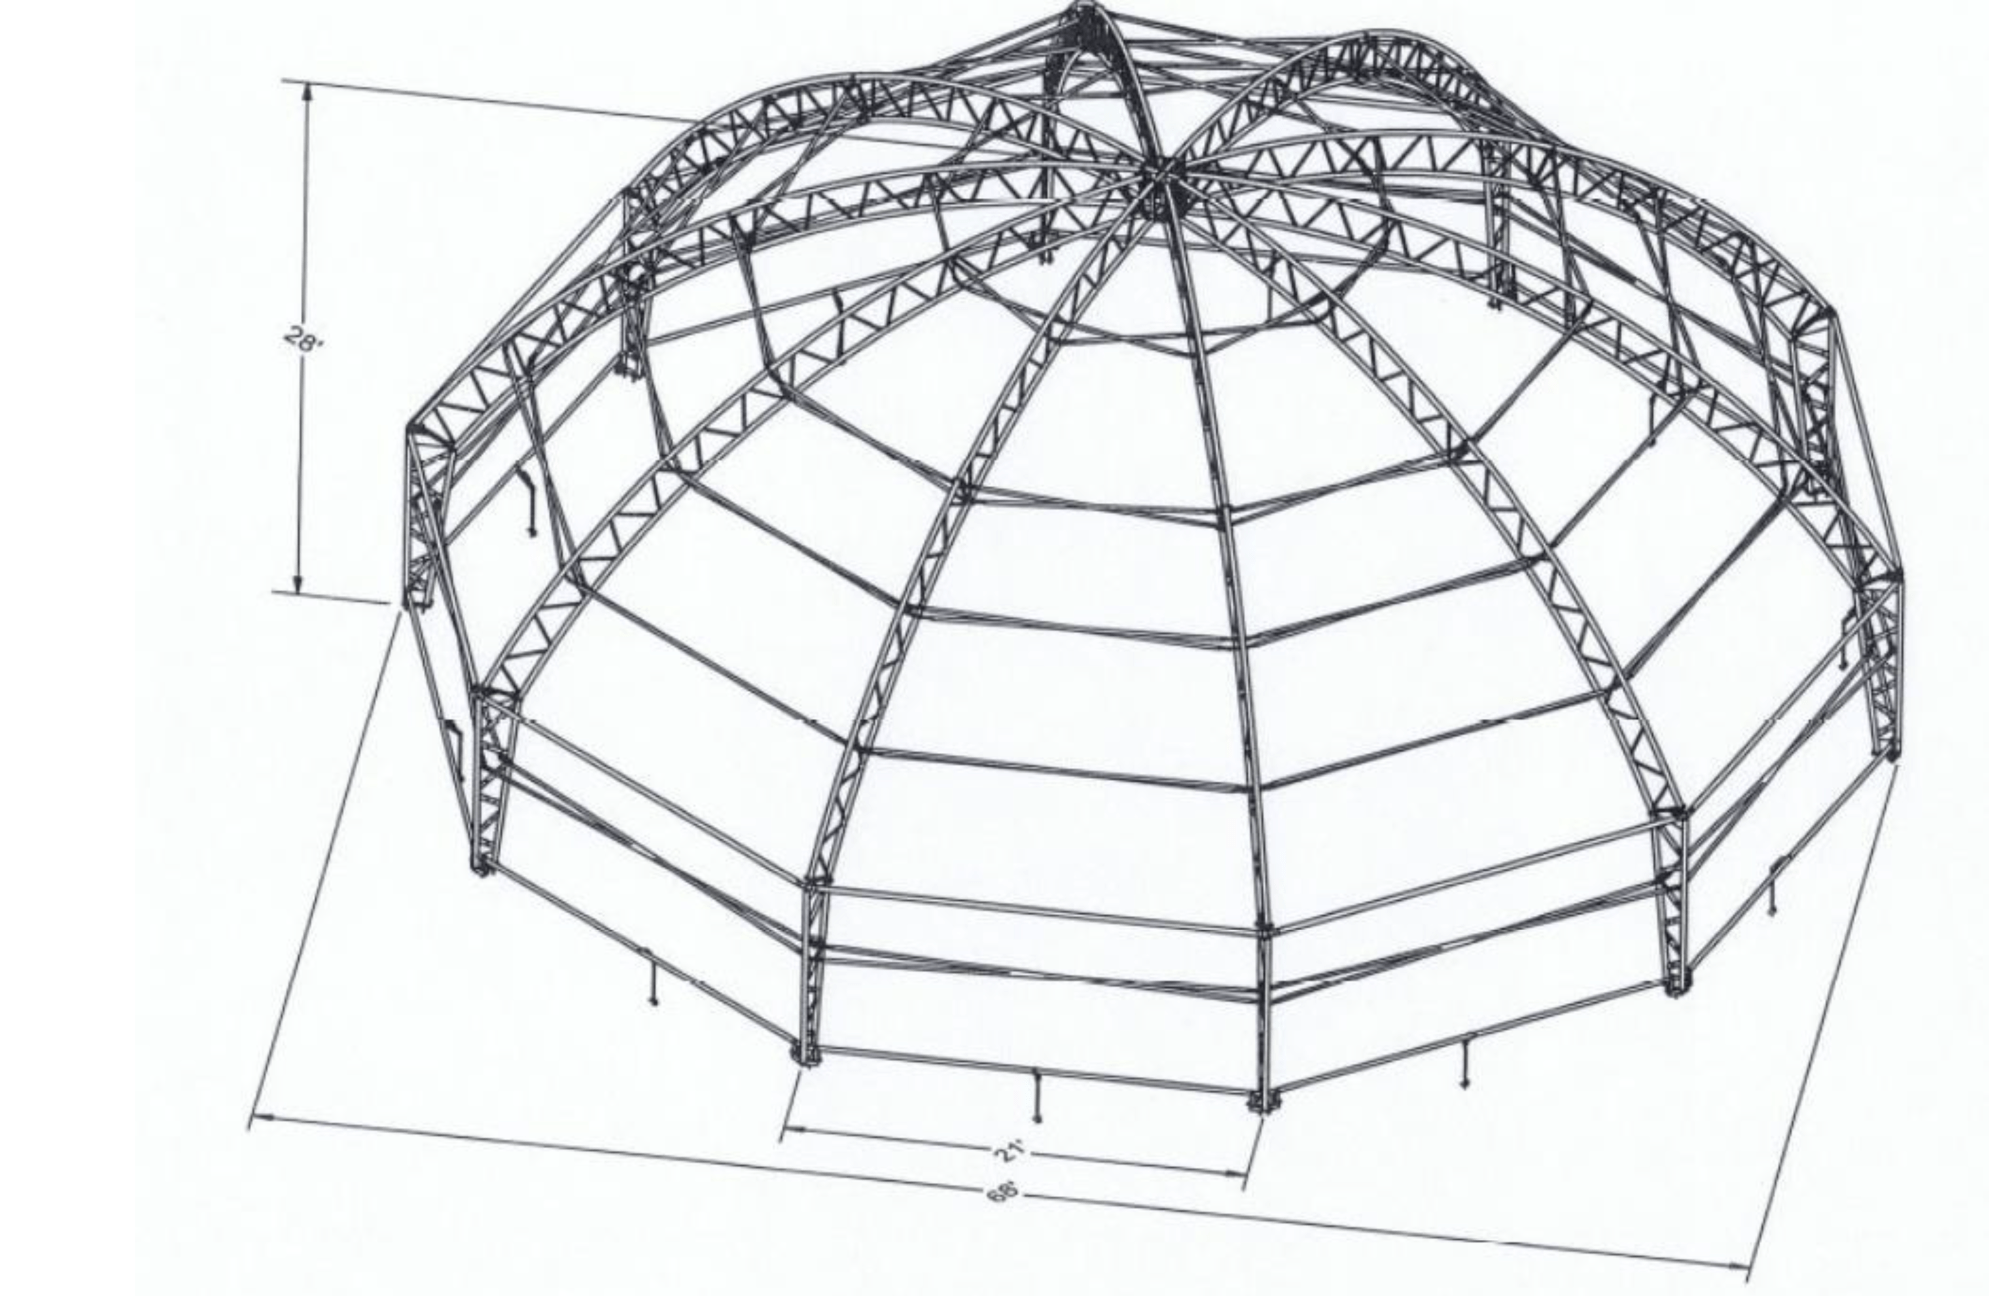 68' Riding Arena structural diagram